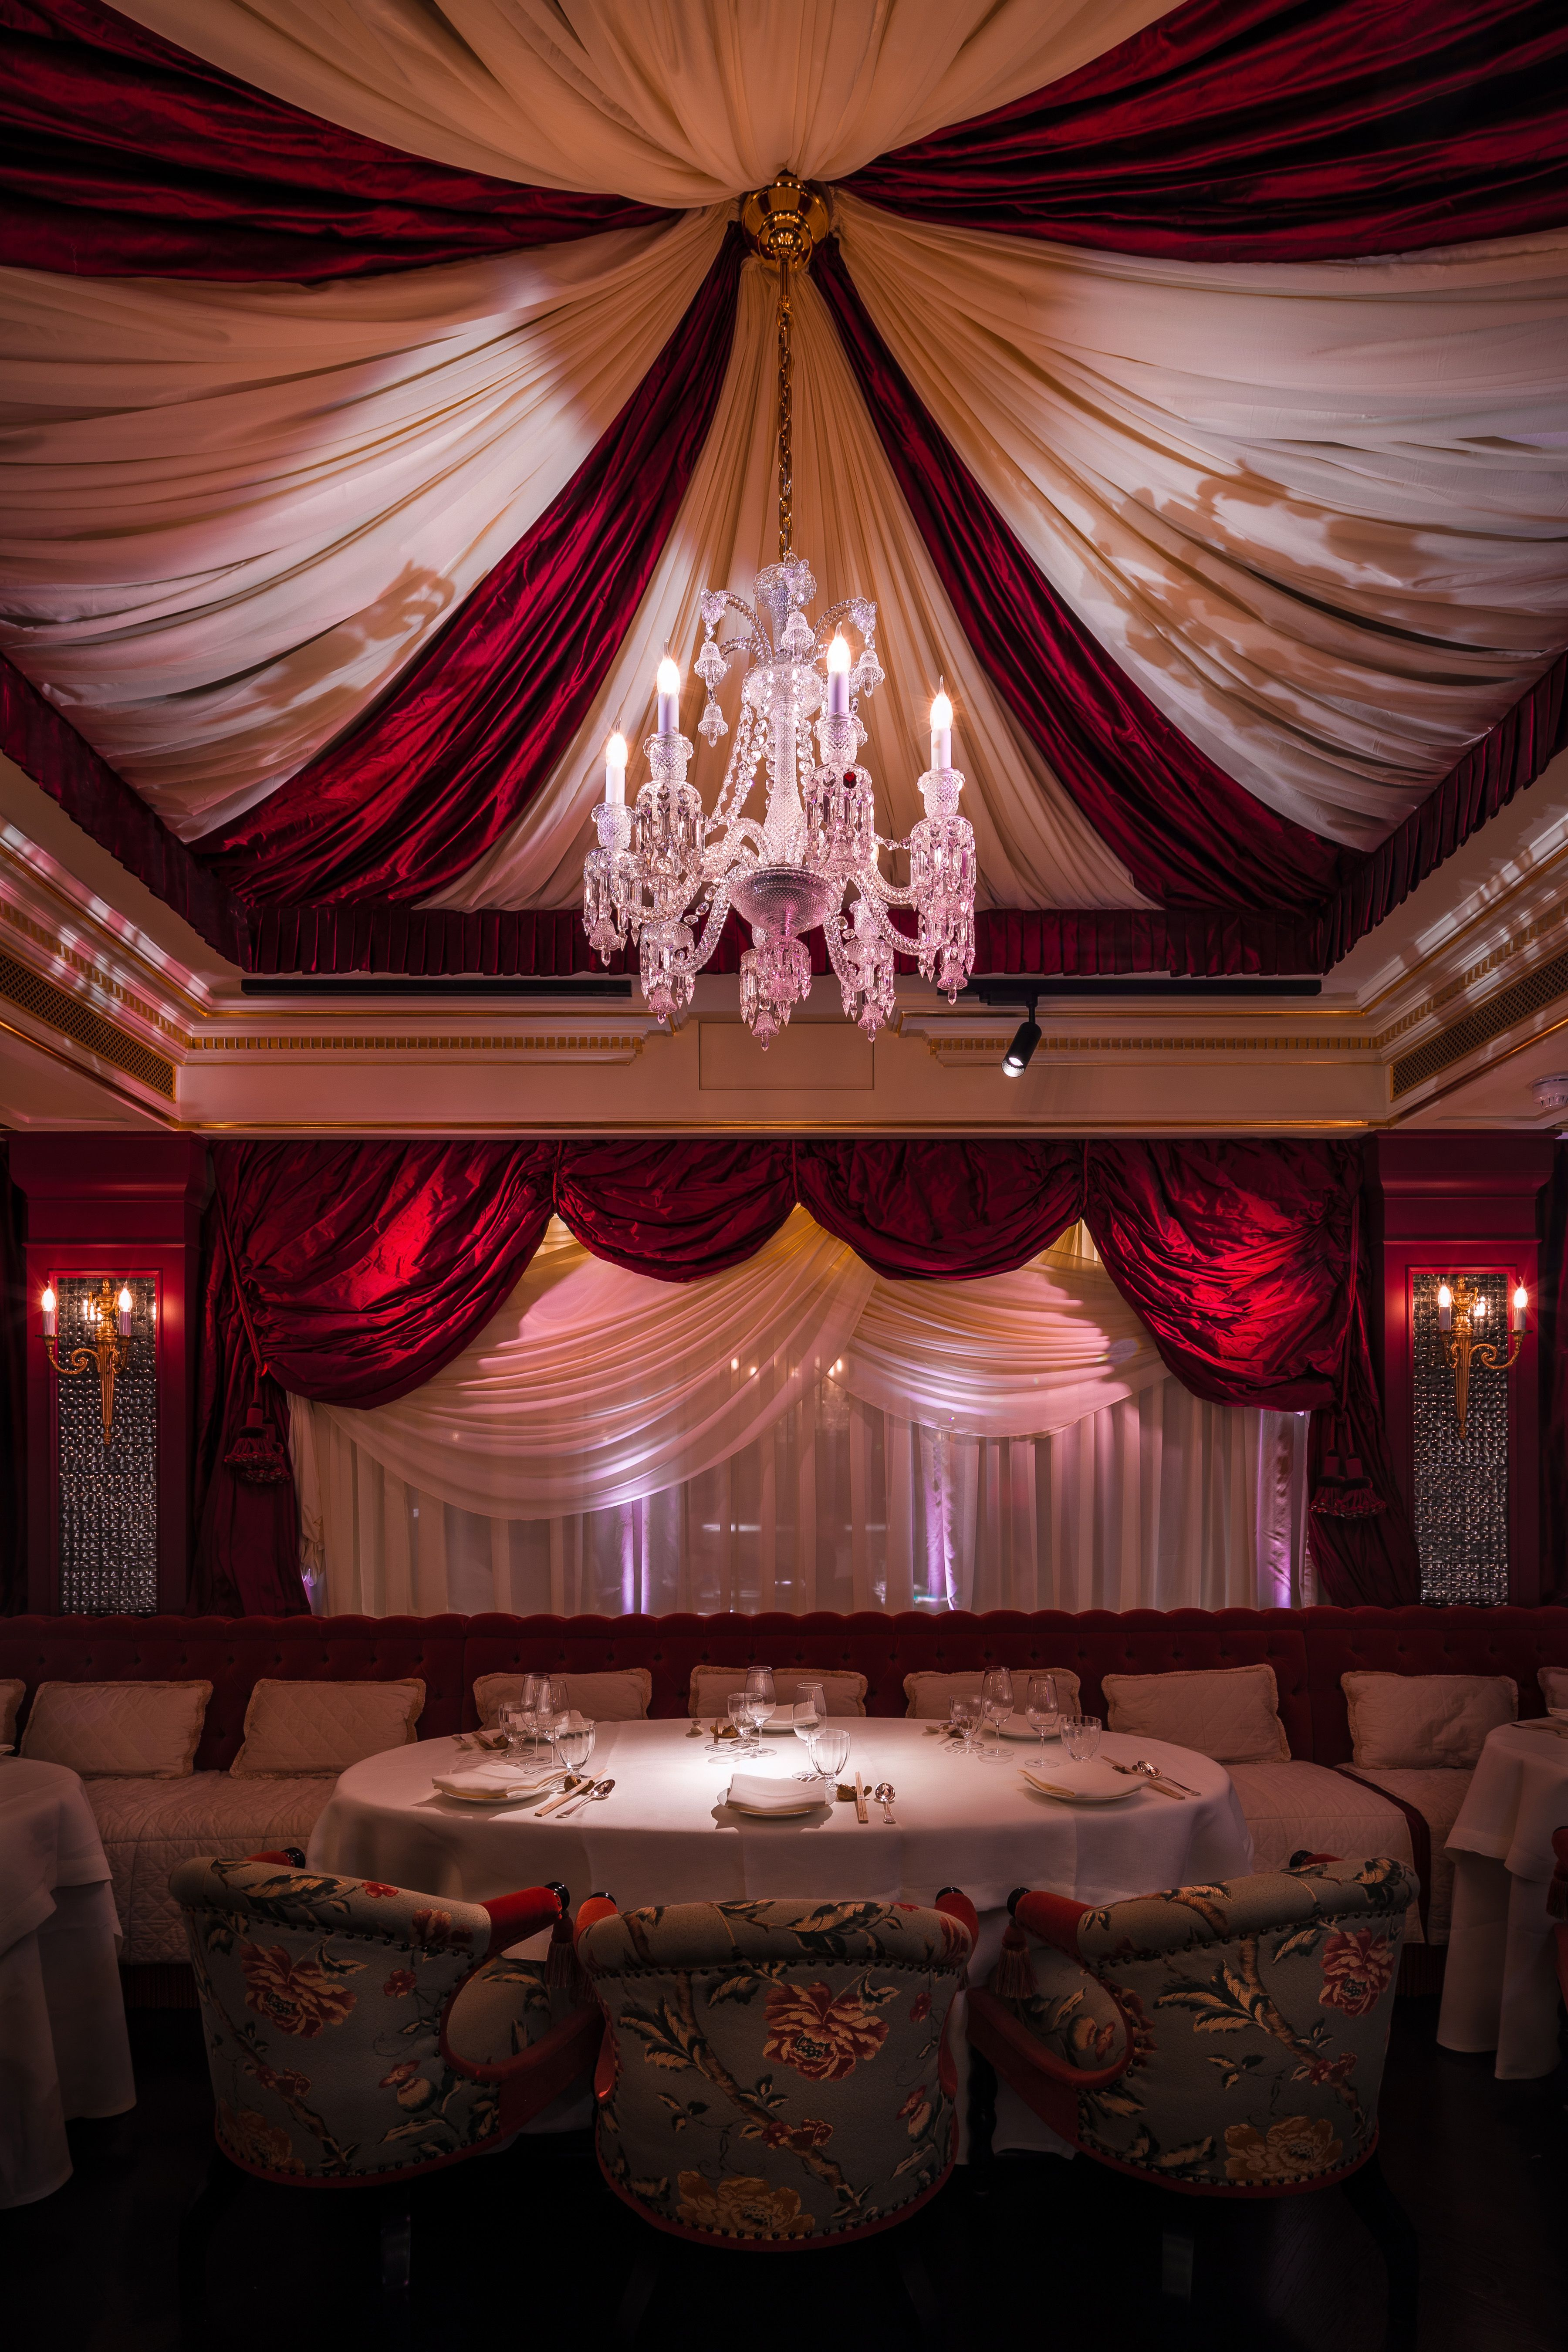 Salon Chinois Salon De Chine Upstairs In Park Chinois Serving Chinese Cuisine